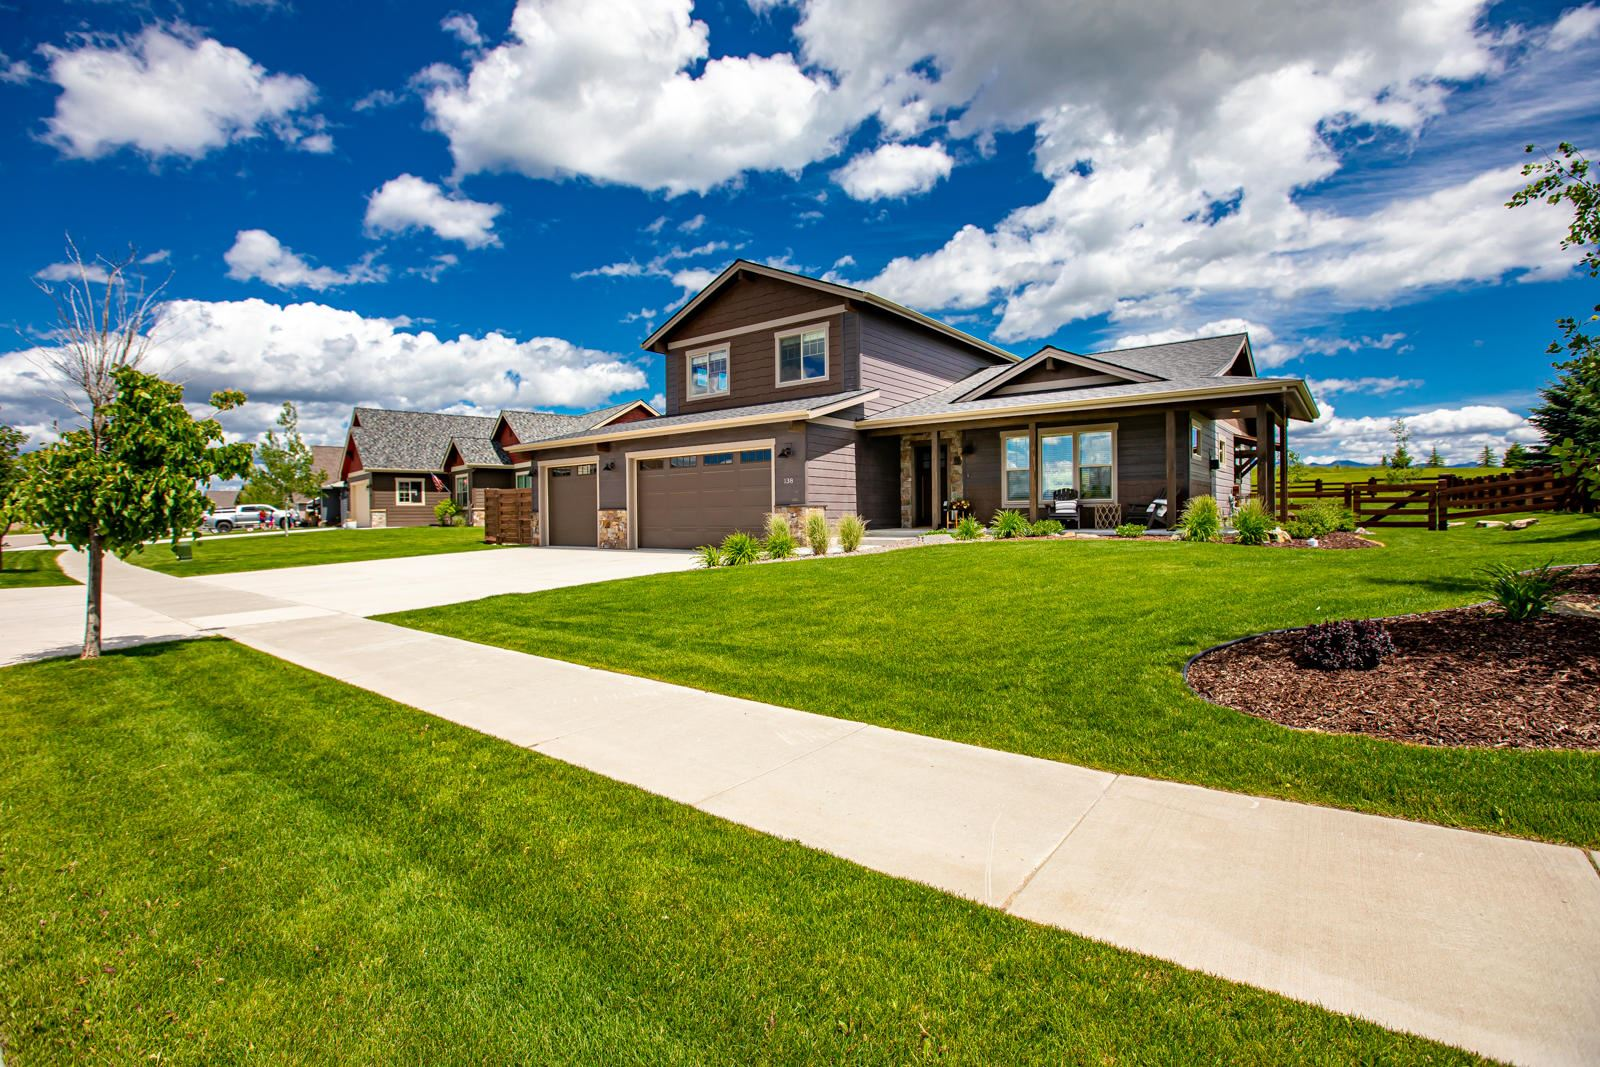 Photo for 138 Swede Trail, Kalispell, MT 59901 (MLS # 22114767)